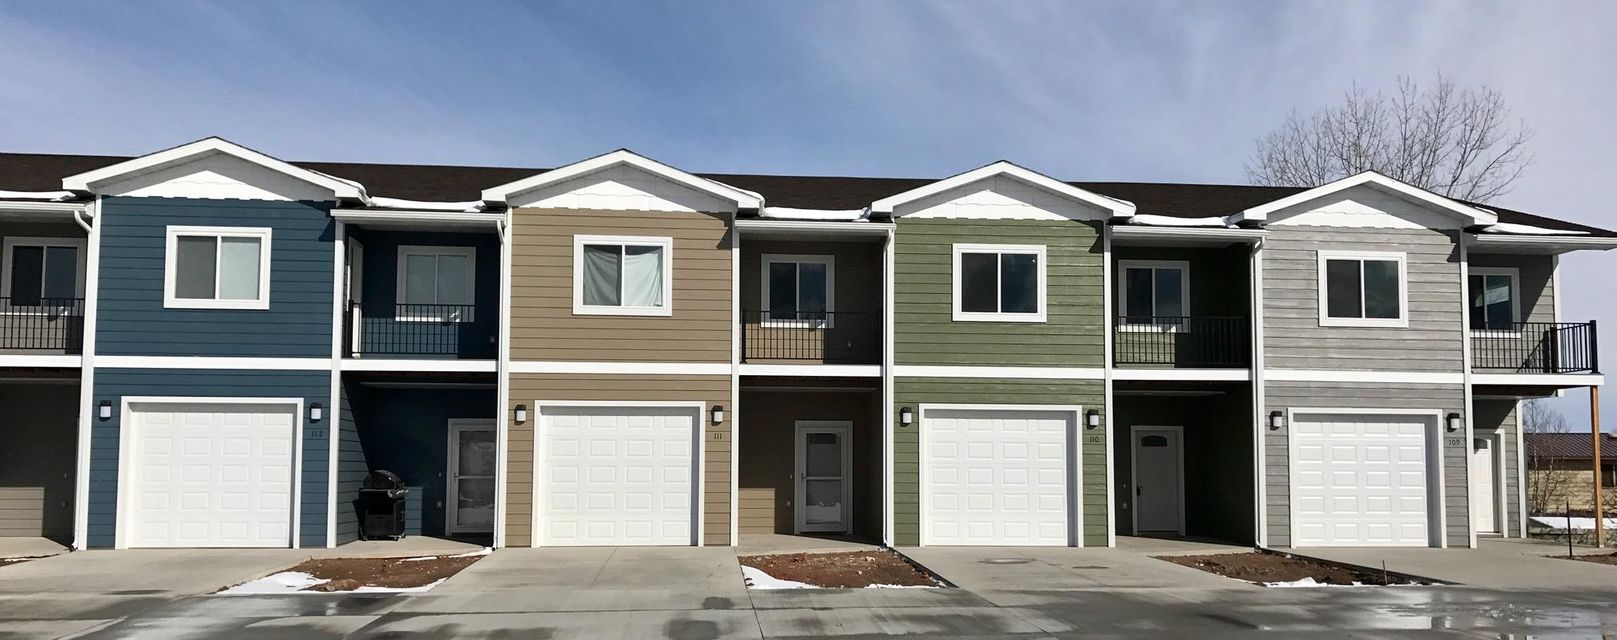 114 Trails West Circle, Ranchester, WY 82839